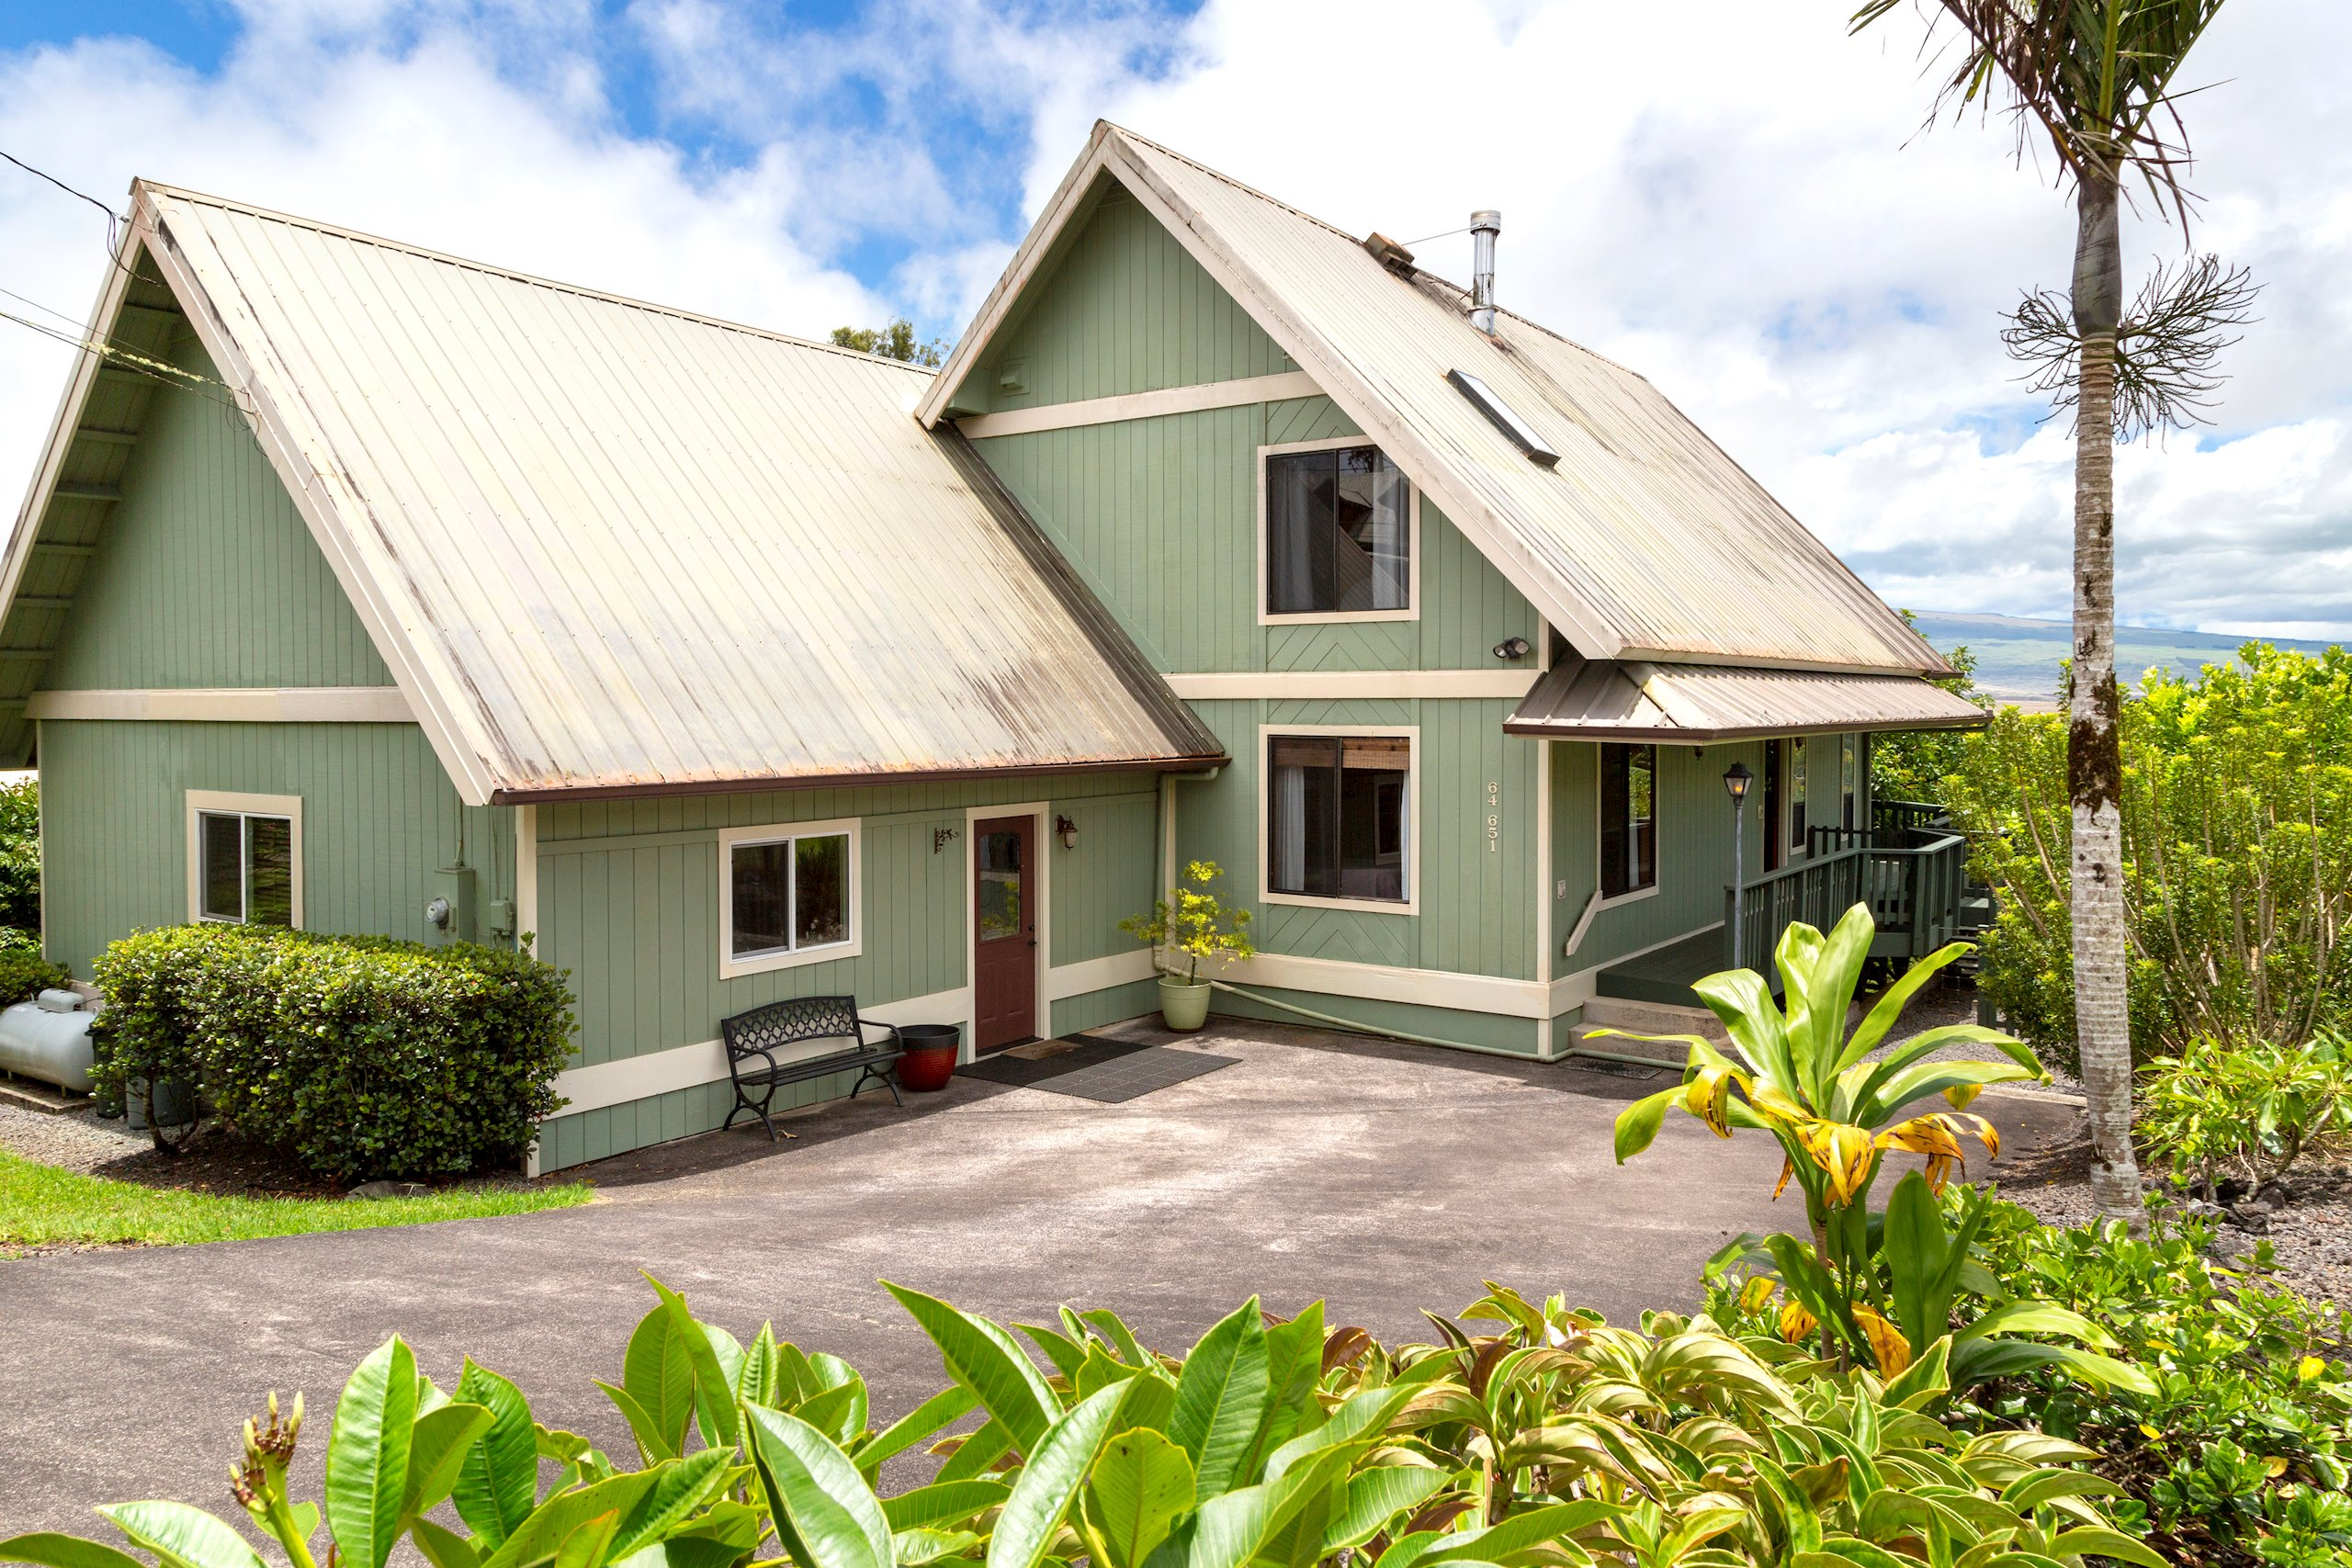 With over 1800sf and an entire wall of windows looking out over a beautiful backyard to Mauna Kea, this home has a lot to offer!  As you enter you can't help but notice the view that seems to be framed like a piece of art across one whole side of the house.  The open concept living/dining/kitchen area is connected to the outside through the slider leading to a wrap-around lanai where you can sit and pick avocados right off the tree.  The ground level of the home has 2 bedrooms and a bathroom down the hall from the living area.  The upper floor of the home is comprised of 625sf and houses the loft space which has incredible views and could be used for many different purposes.  It is currently set up as a home office.  The master suite is located just off the loft area and it boasts high ceilings, a walk-in closet and master bathroom.  There is plenty of storage and extra space in this wonderful home on the hill.  <br><br>The exterior of the home has a nice wrap-around lanai, a storage shed, easy access to the underside of the structure, an on-demand/tankless hot water heater, and a yard full of ornamental plants, fruit trees, and other edibles.  The yard has been very well maintained.